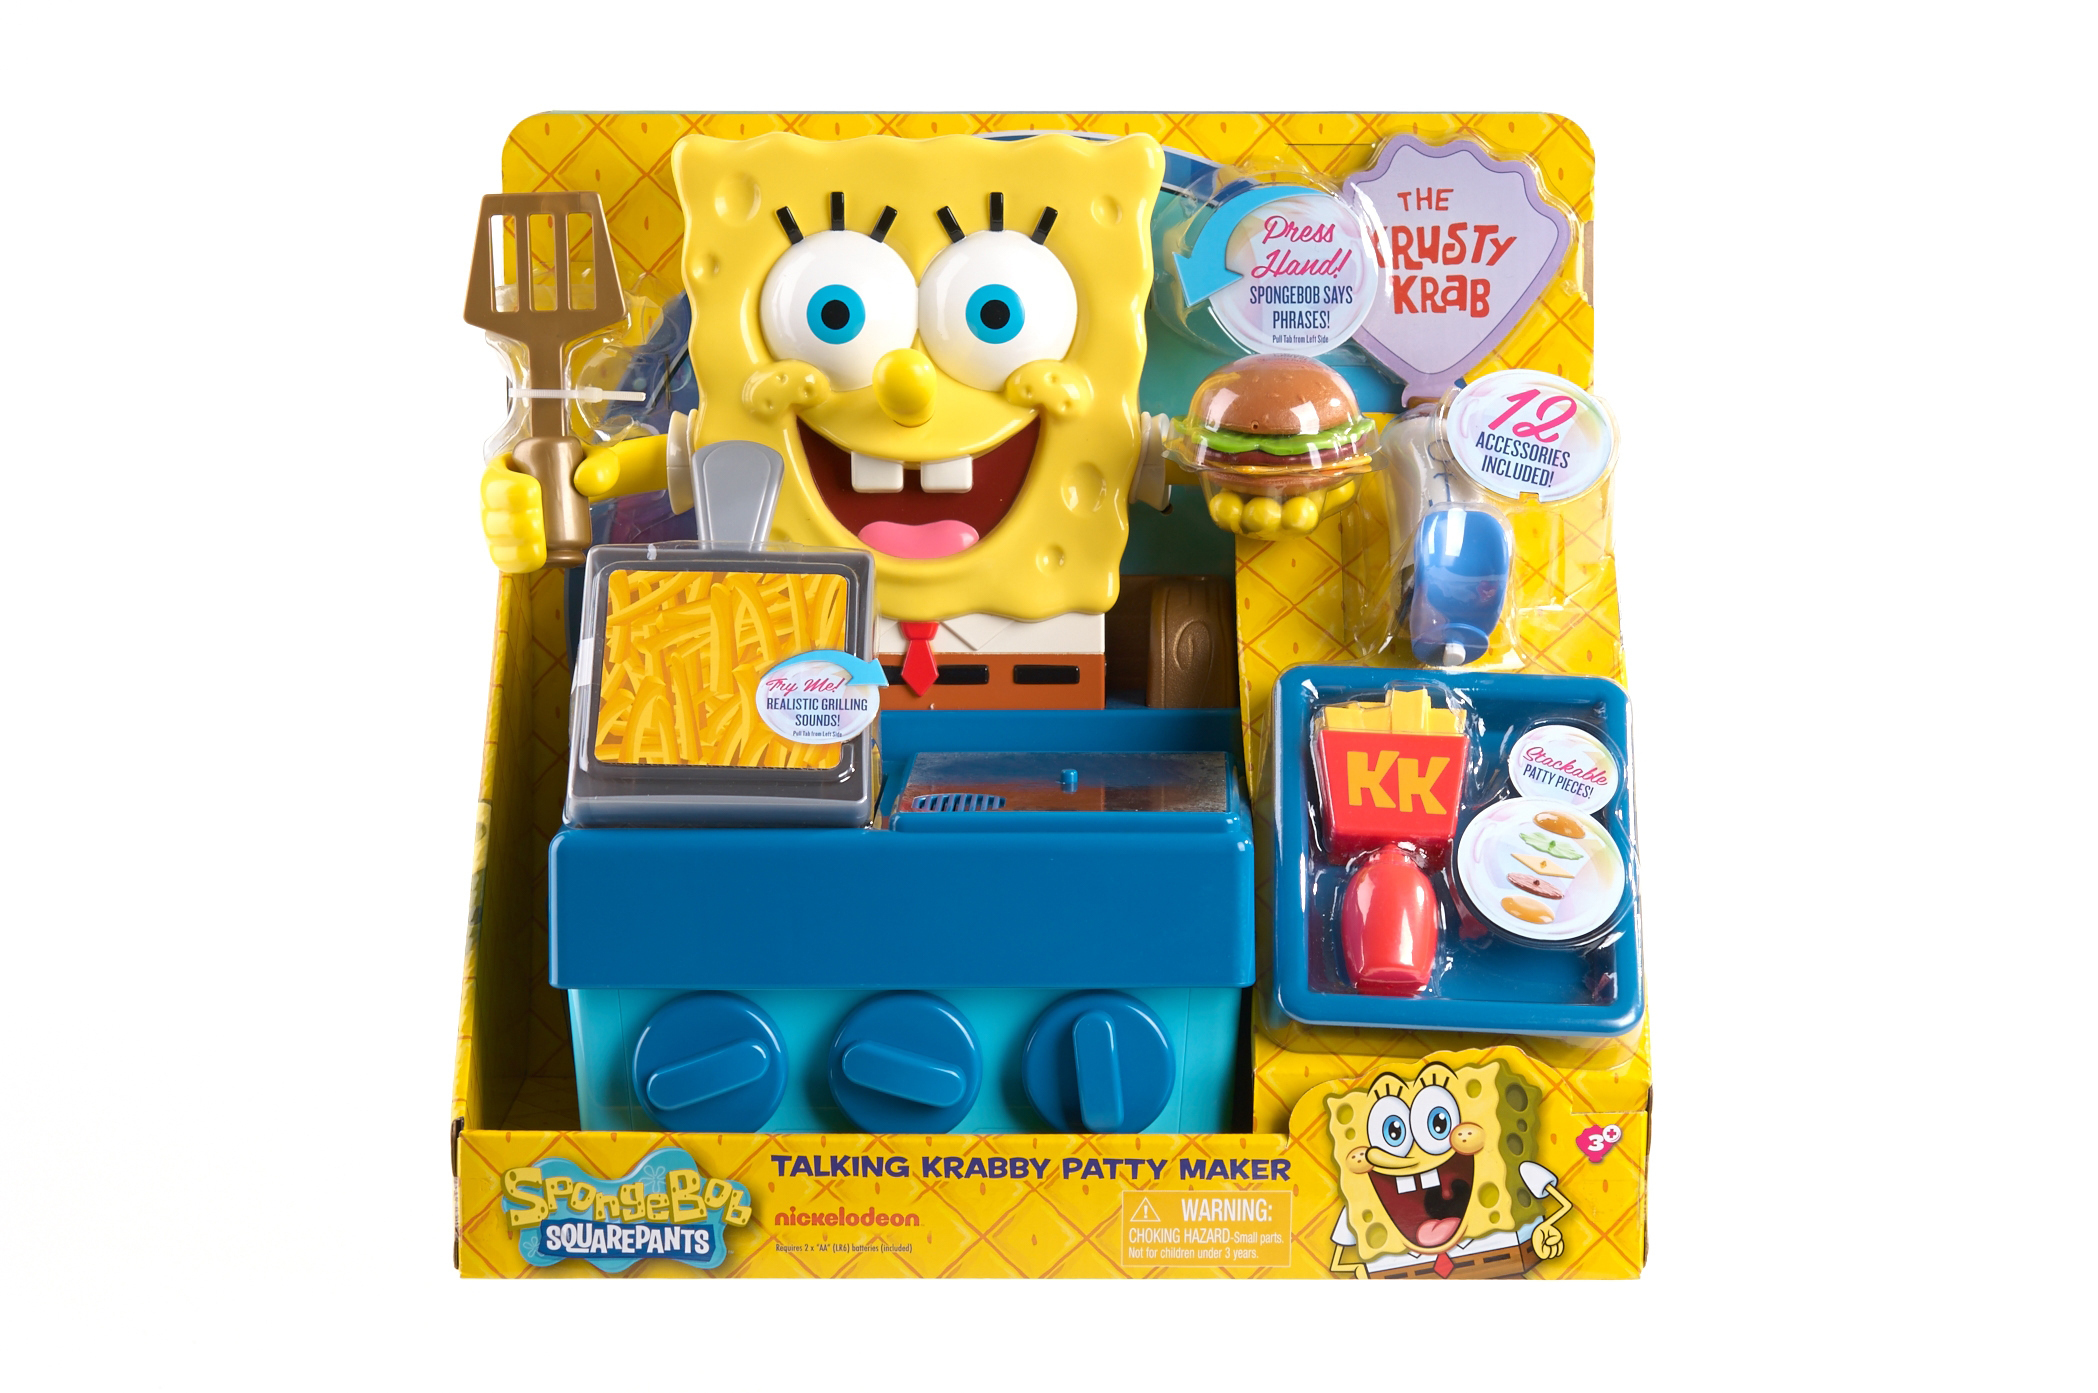 Toys R Us Cartoon Characters : Nickelodeon unveils robust spongebob squarepants toy and